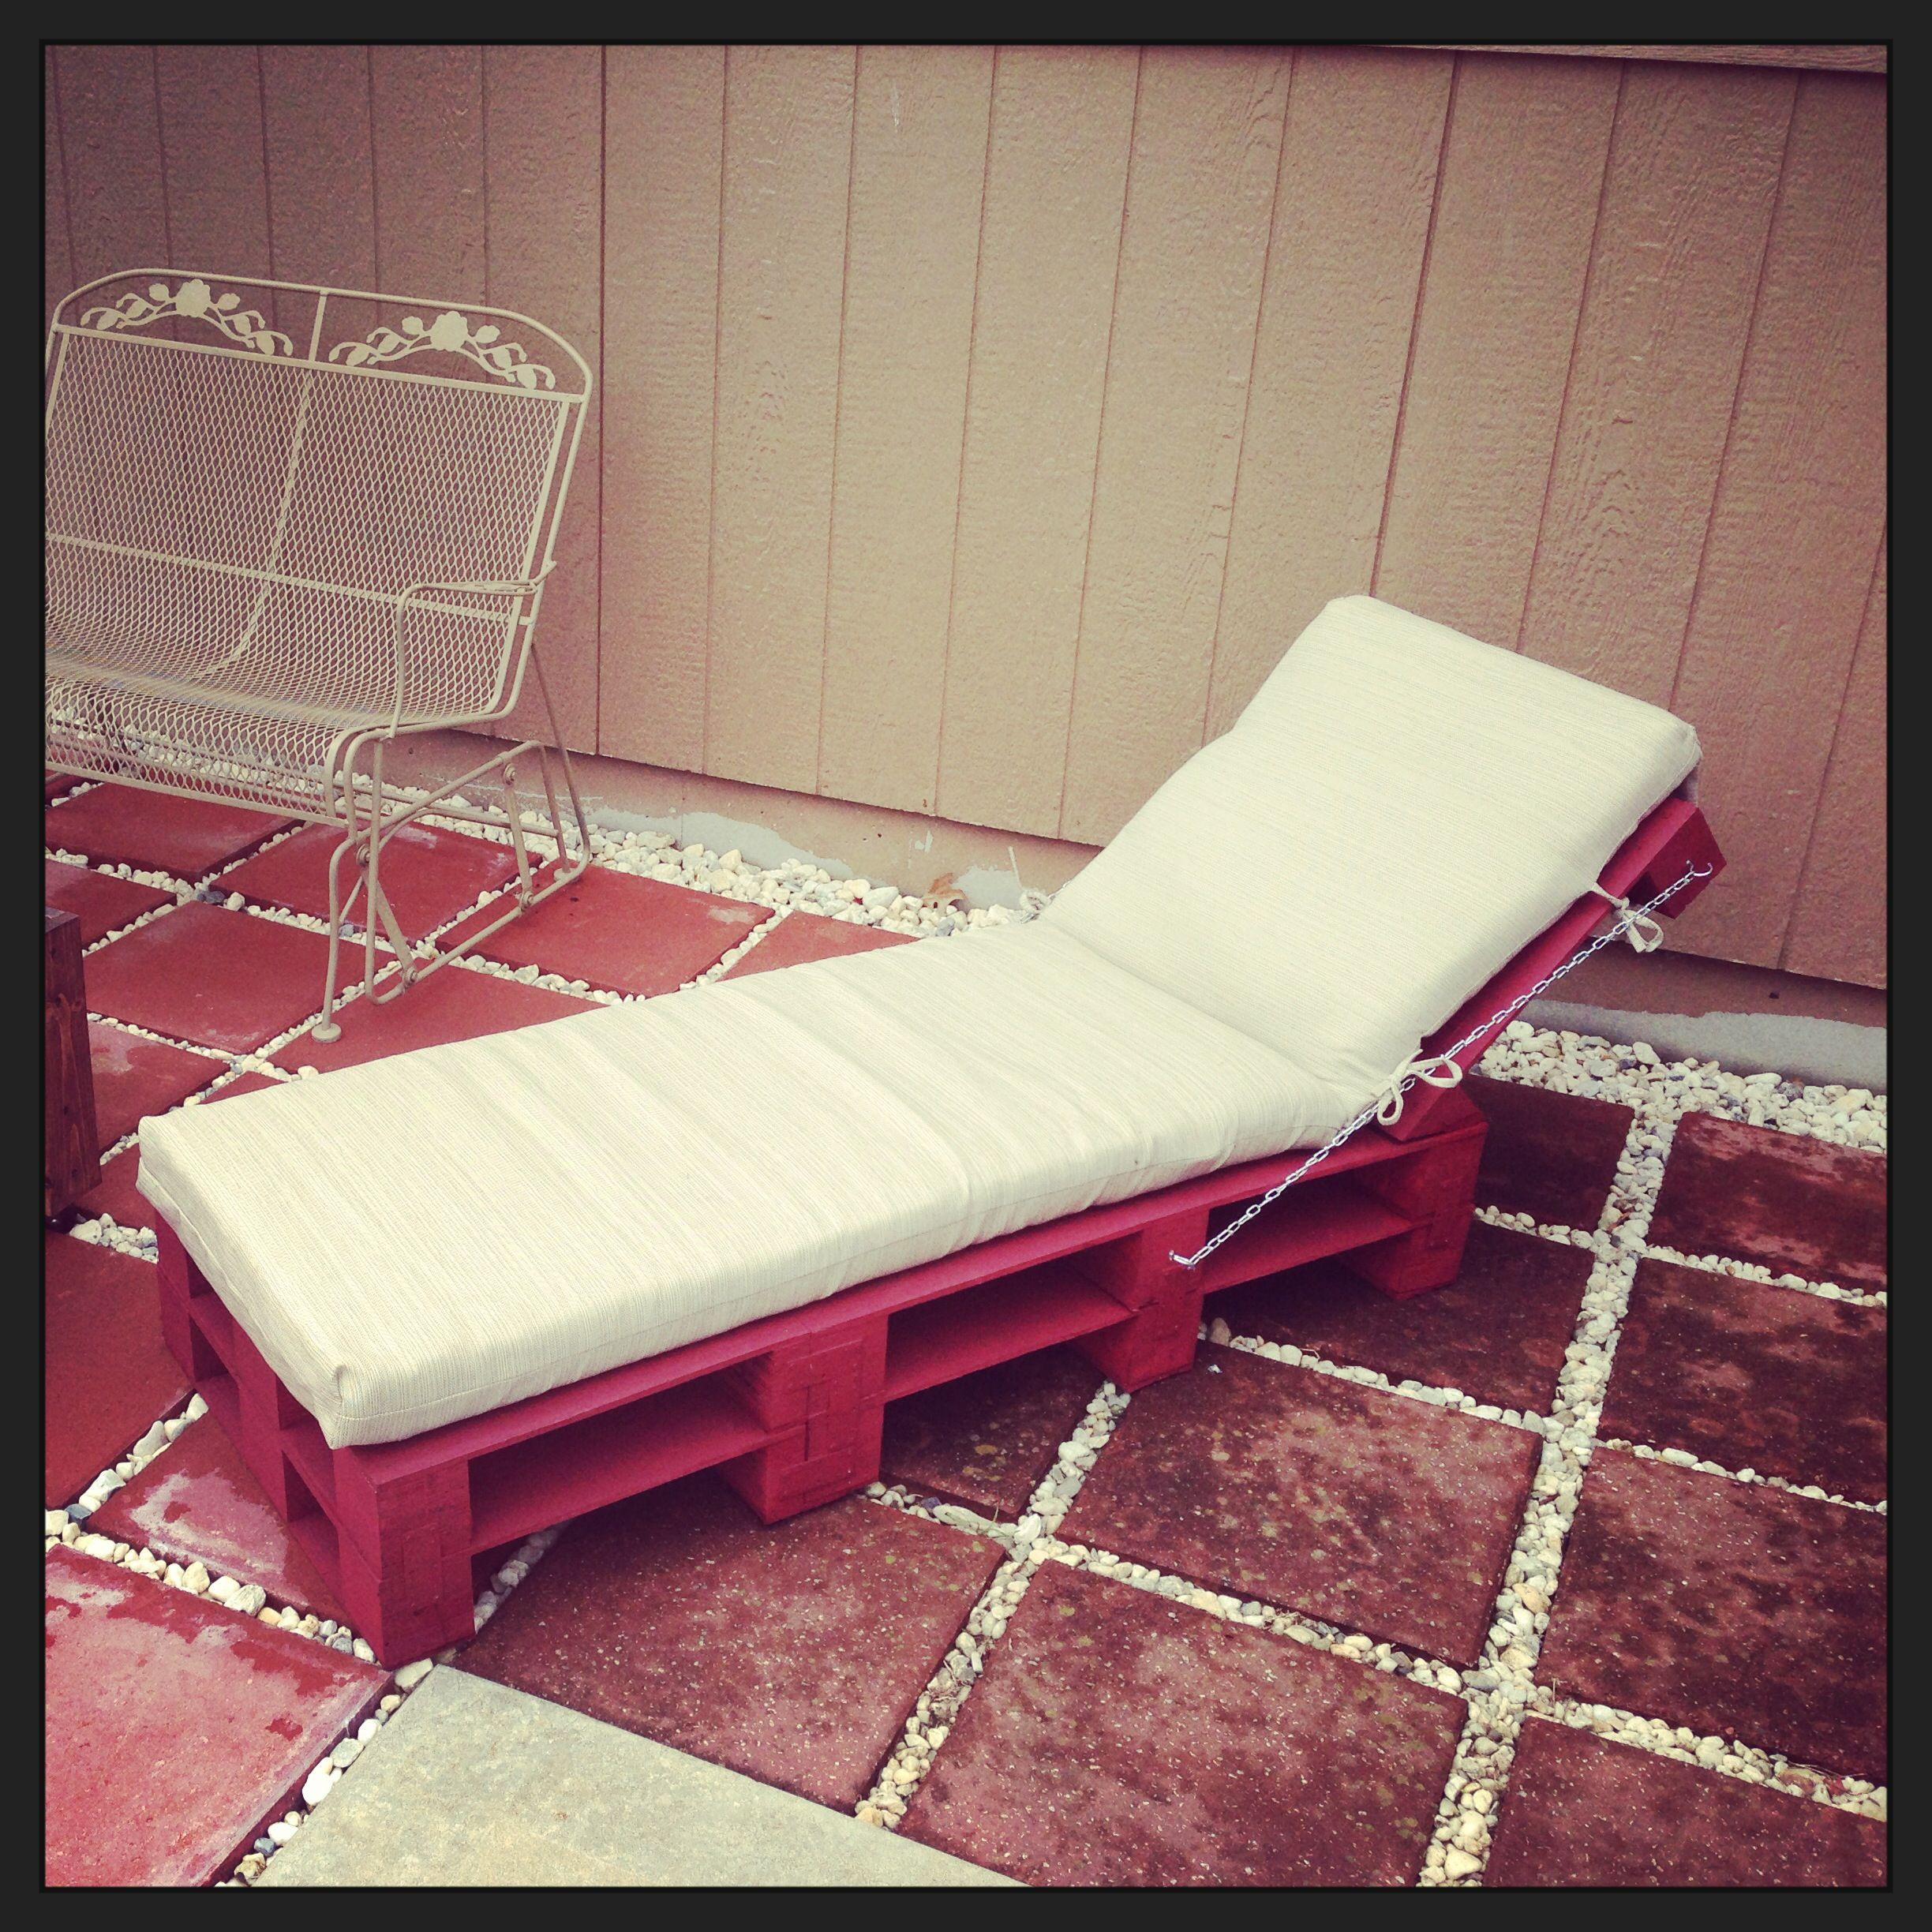 Diy Pallet Chair Design Ideas To Try: Pallet Chaise Lounge Chair!!!